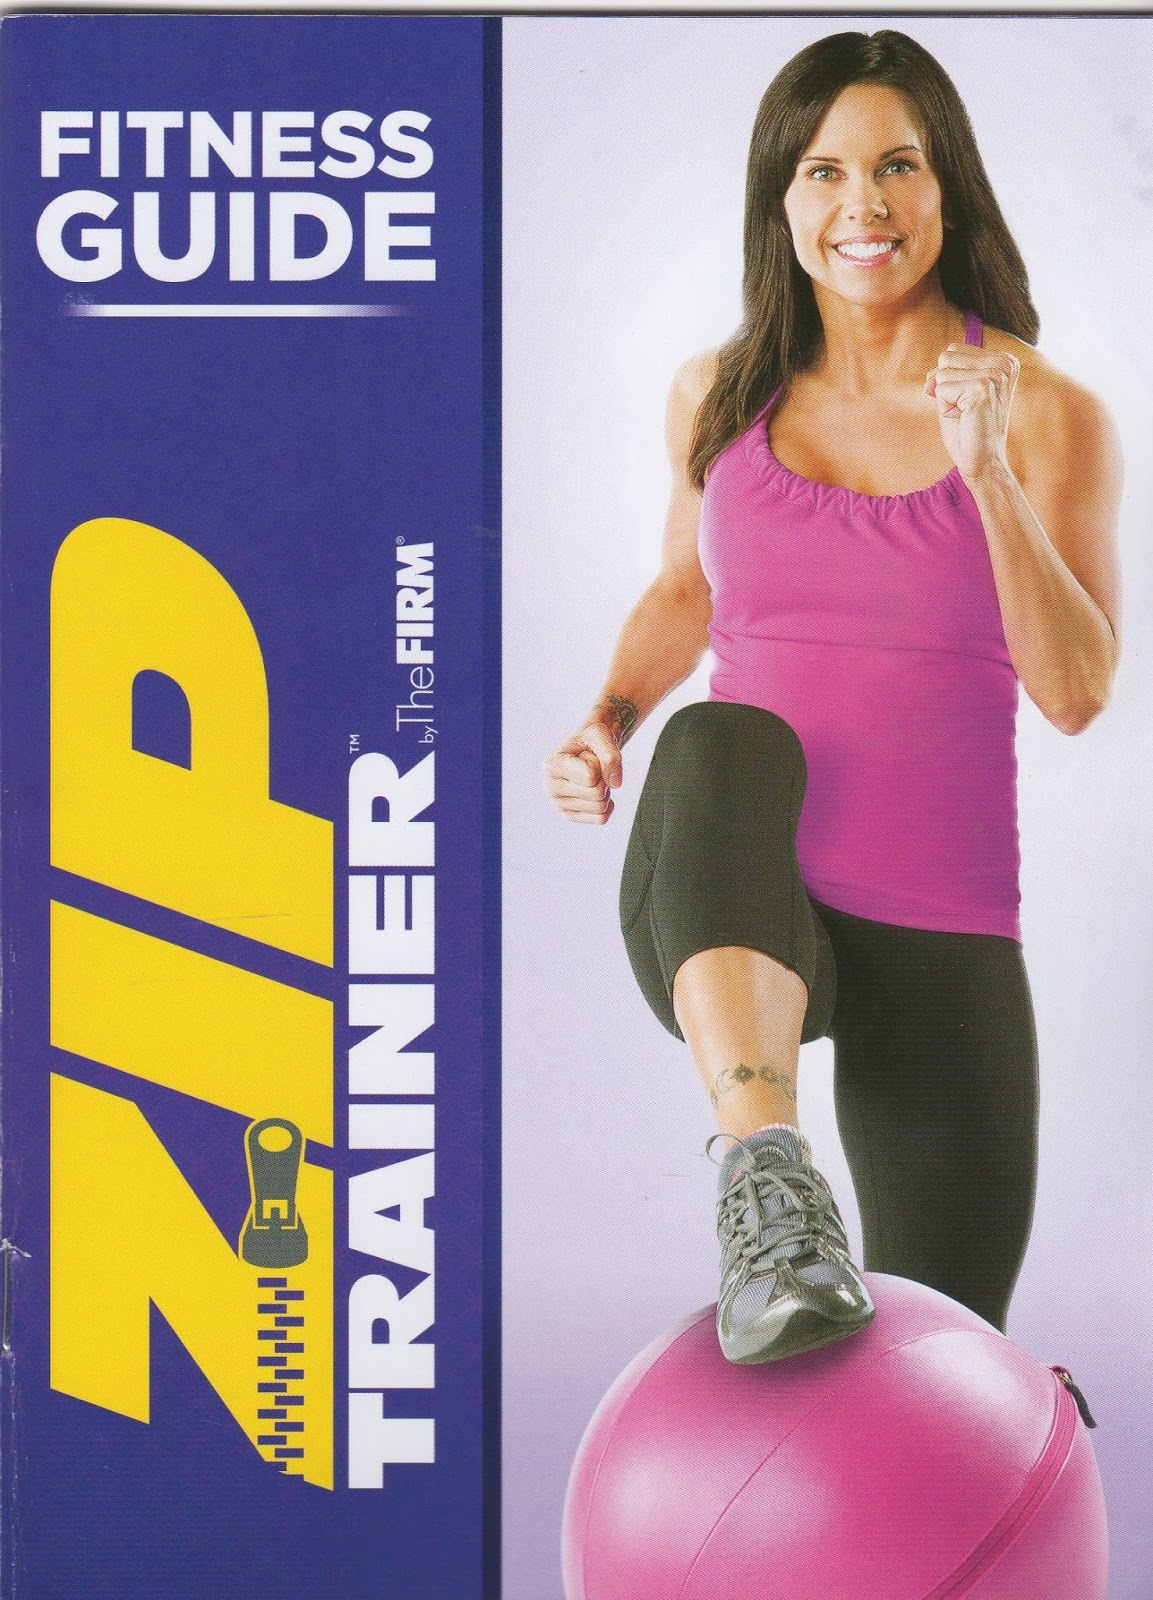 Saundra The Firm Zip Trainer Review